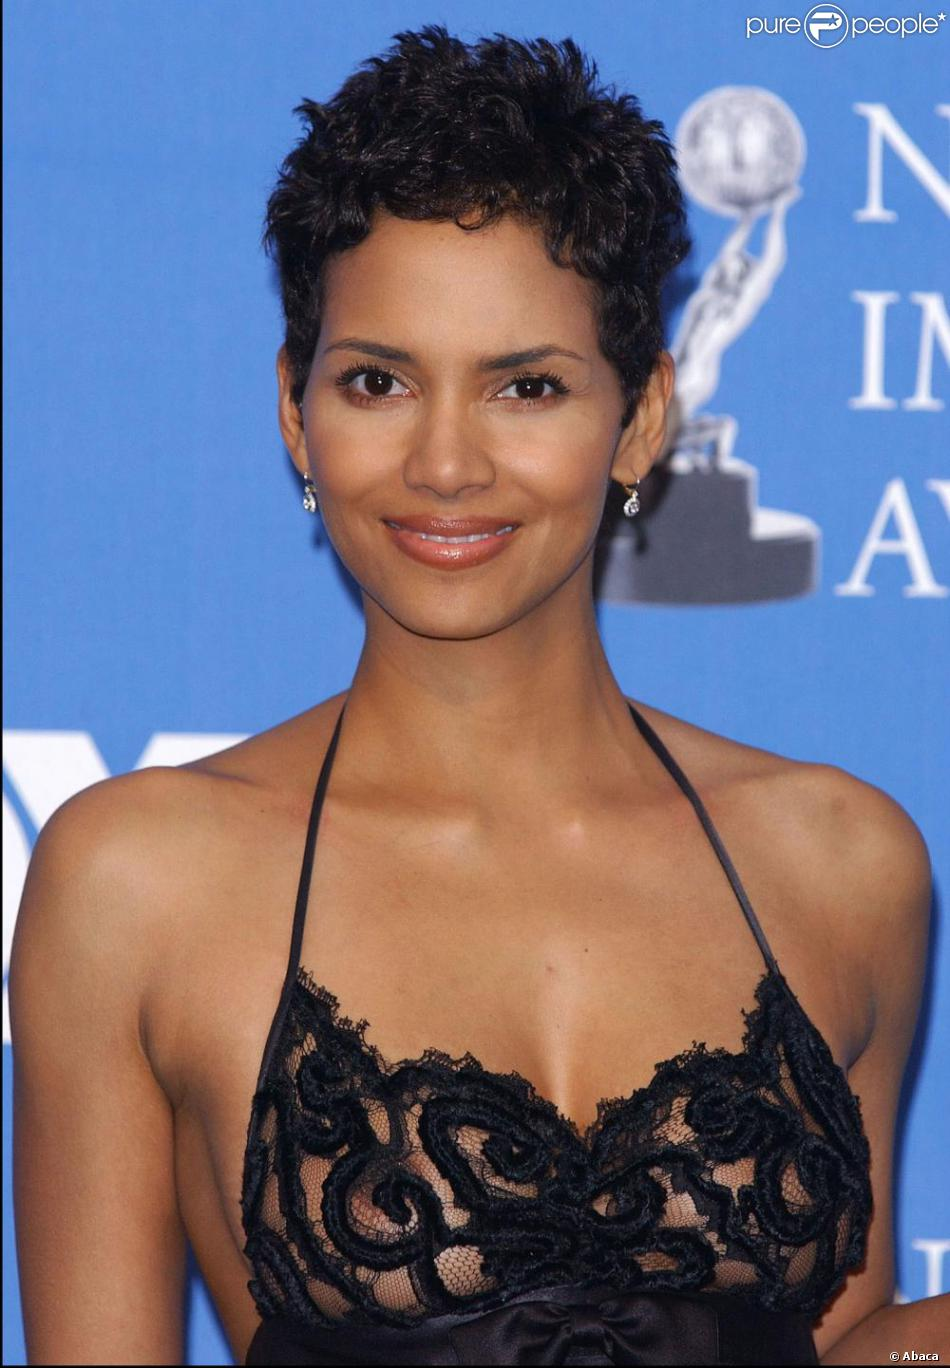 Halle Berry En 2003 Purepeople